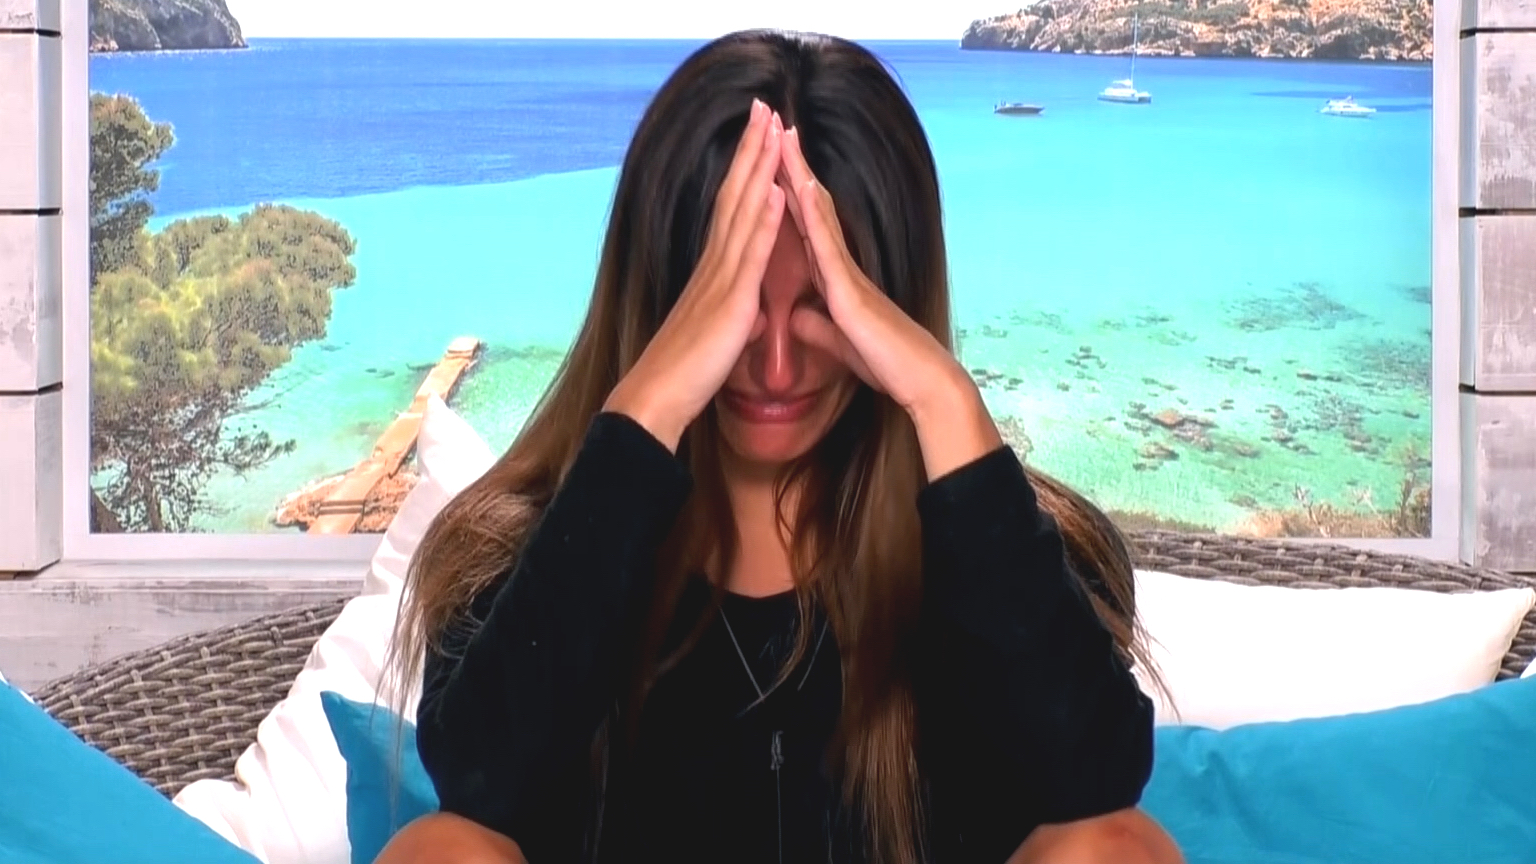 Cartier left in tears after she and Adam call an end to their relationship